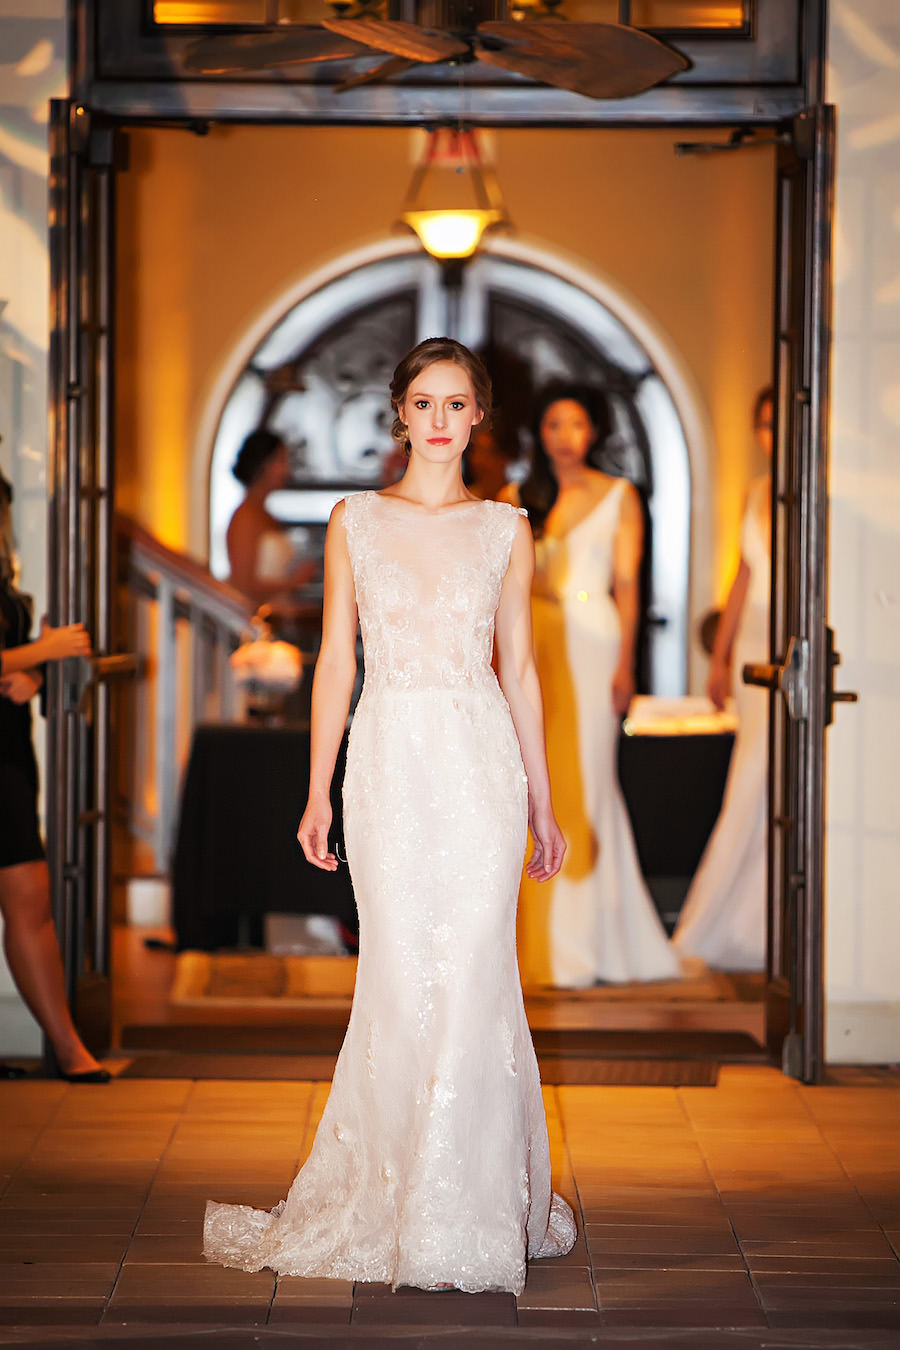 Marry Me Tampa Bay Wedding Week Fashion Show | Model in Lace Wedding Dress | Tampa Bridal Salon Isabel O'Neil Bridal | Wedding Photographer Limelight Photography